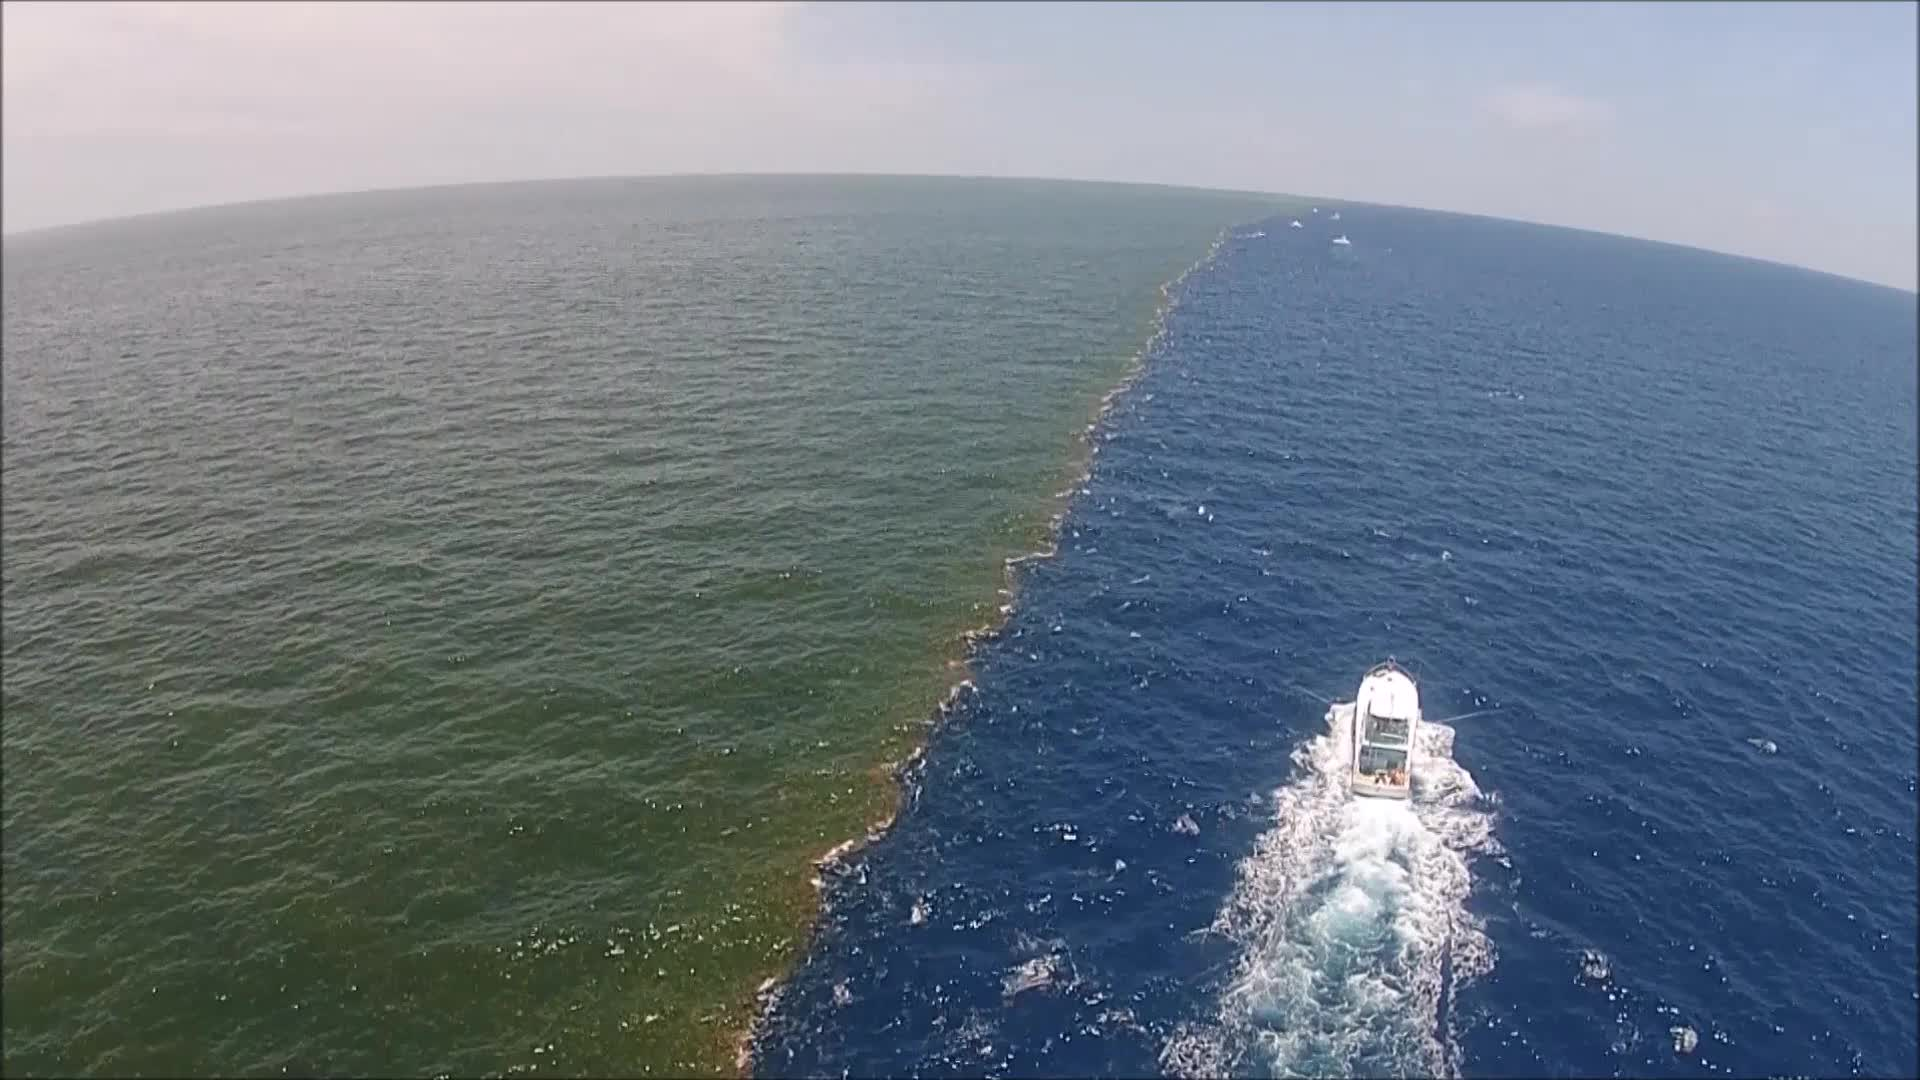 Mississippi River Meets The Gulf of Mexico: NO OXYGEN, NO LIFE: THE ...